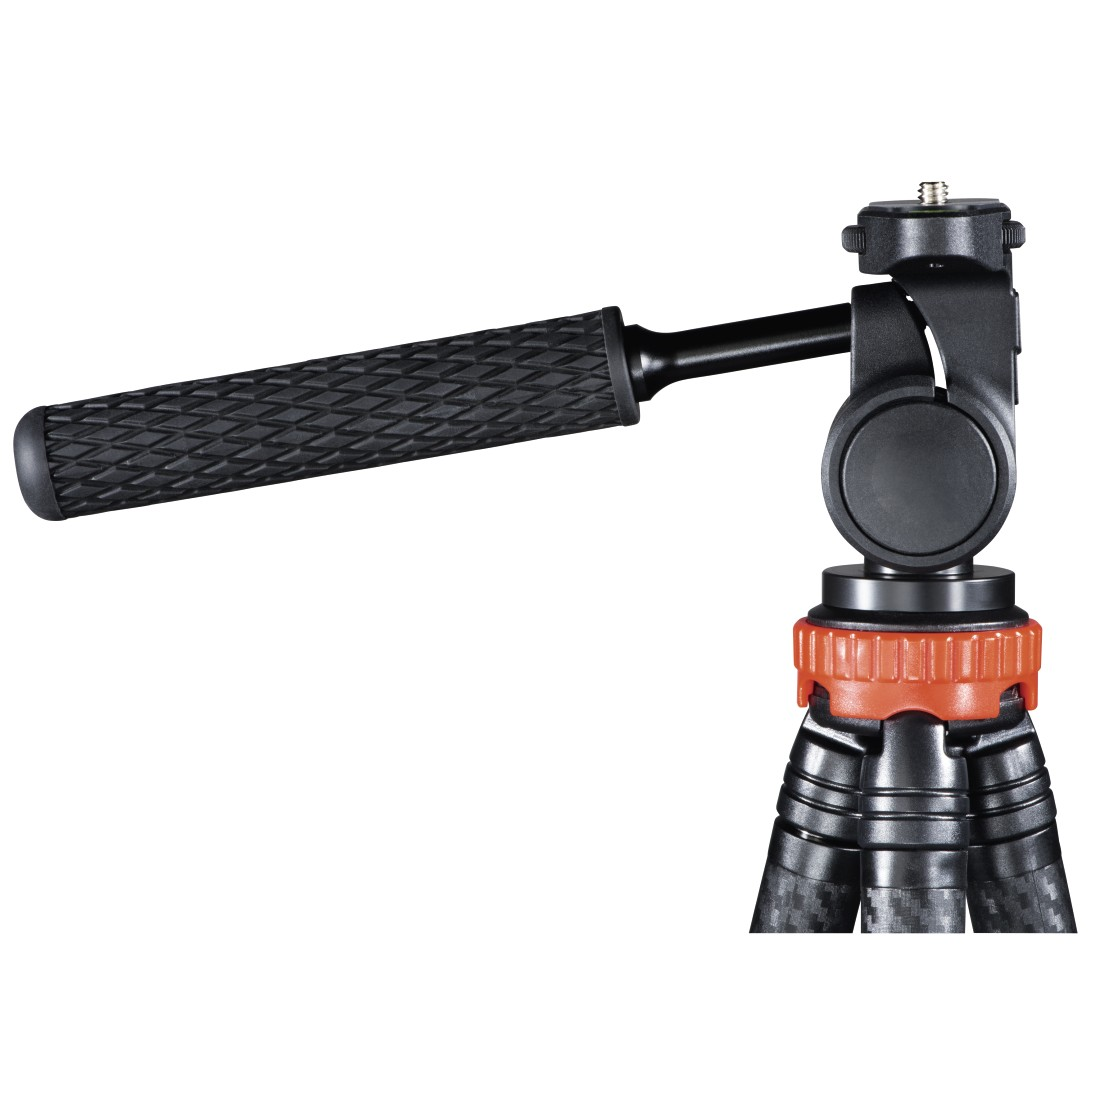 "dex5 High-Res Detail 5 - Hama, ""Traveller Pro"" Tripod for Smartphones, GoPros, Photo Cameras, 106 - 2D"